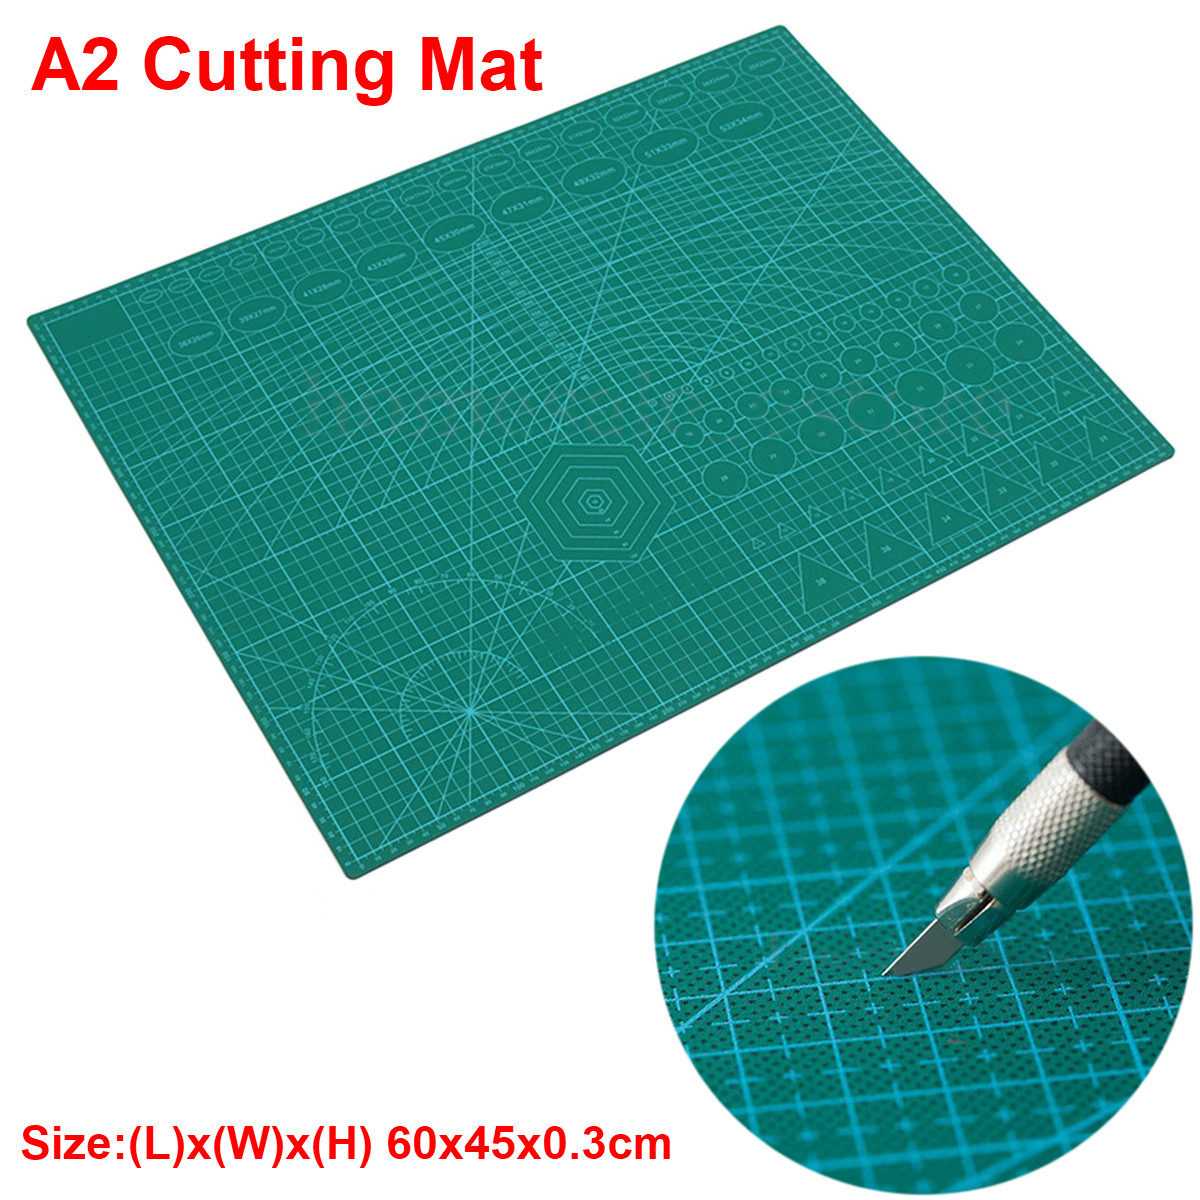 A2 PVC Double Printed Self Healing Cutting Mat Craft Quilting Scrapbooking Board 60*45cm <font><b>Patchwork</b></font> Fabric Paper Craft <font><b>Tools</b></font> image